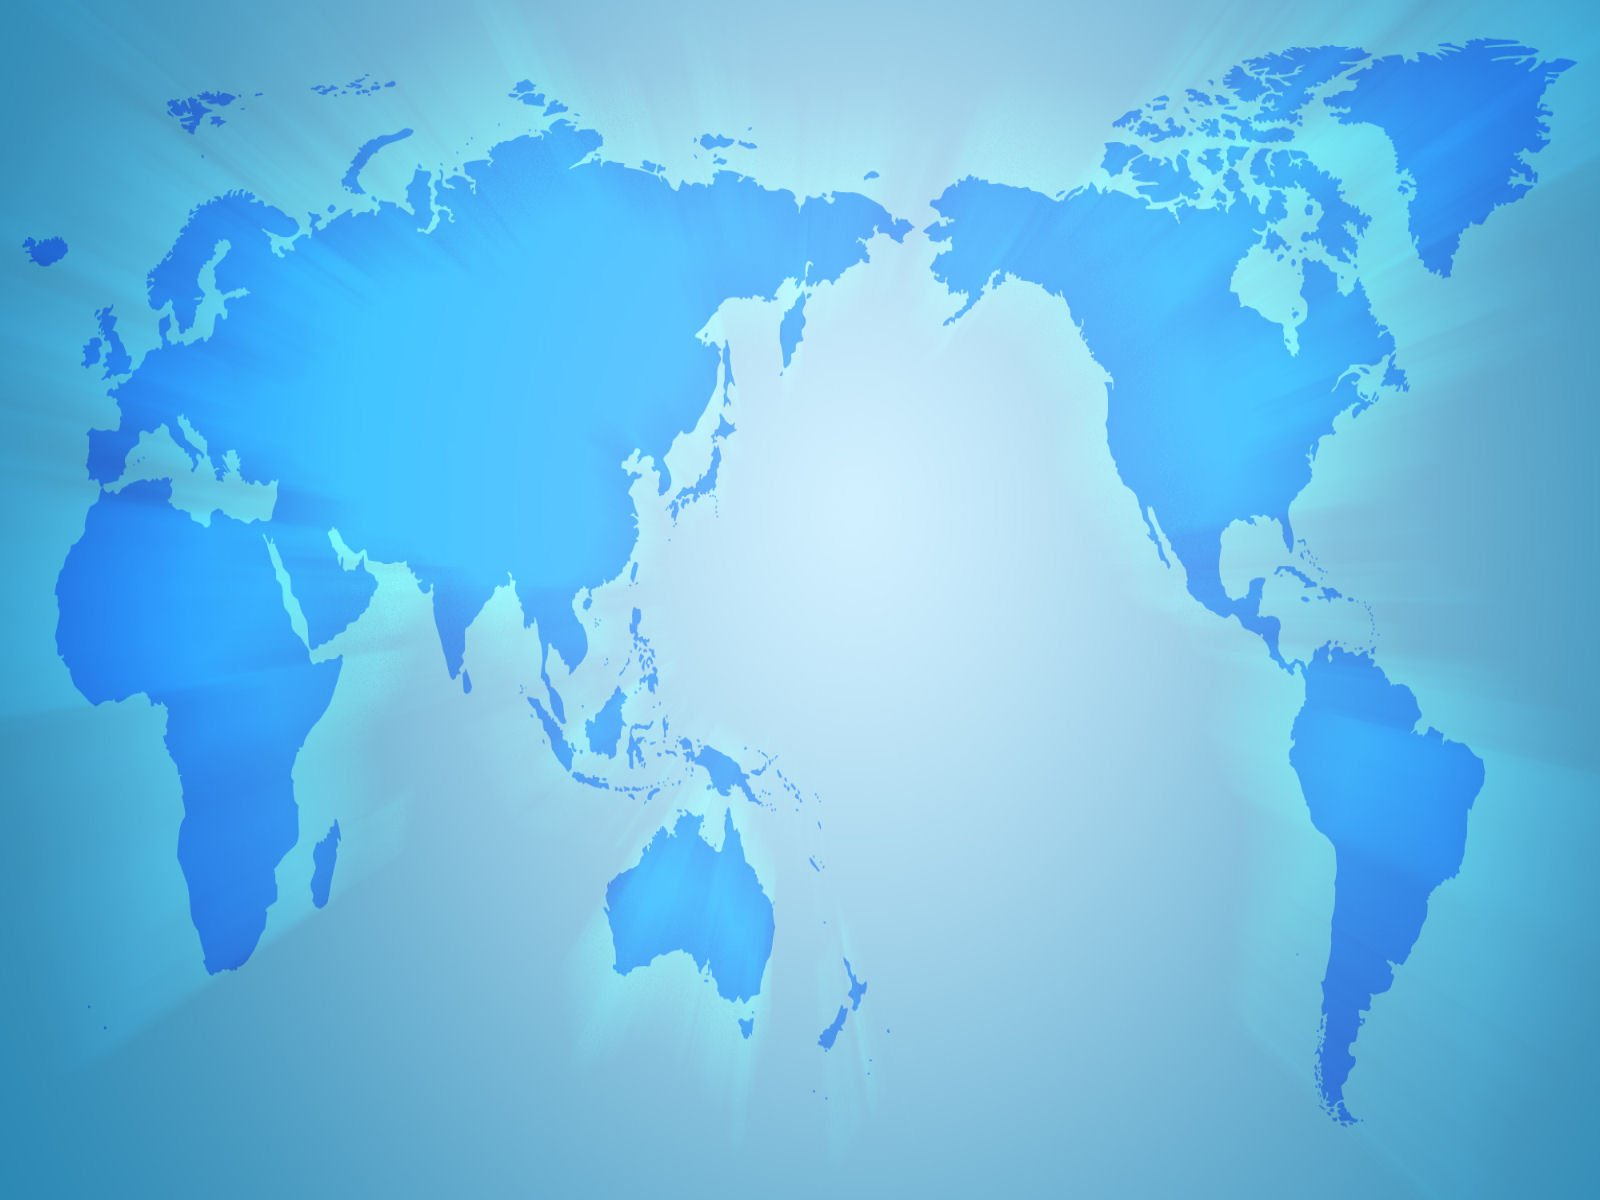 world map wallpaper blue 3d world map w 1600x1200